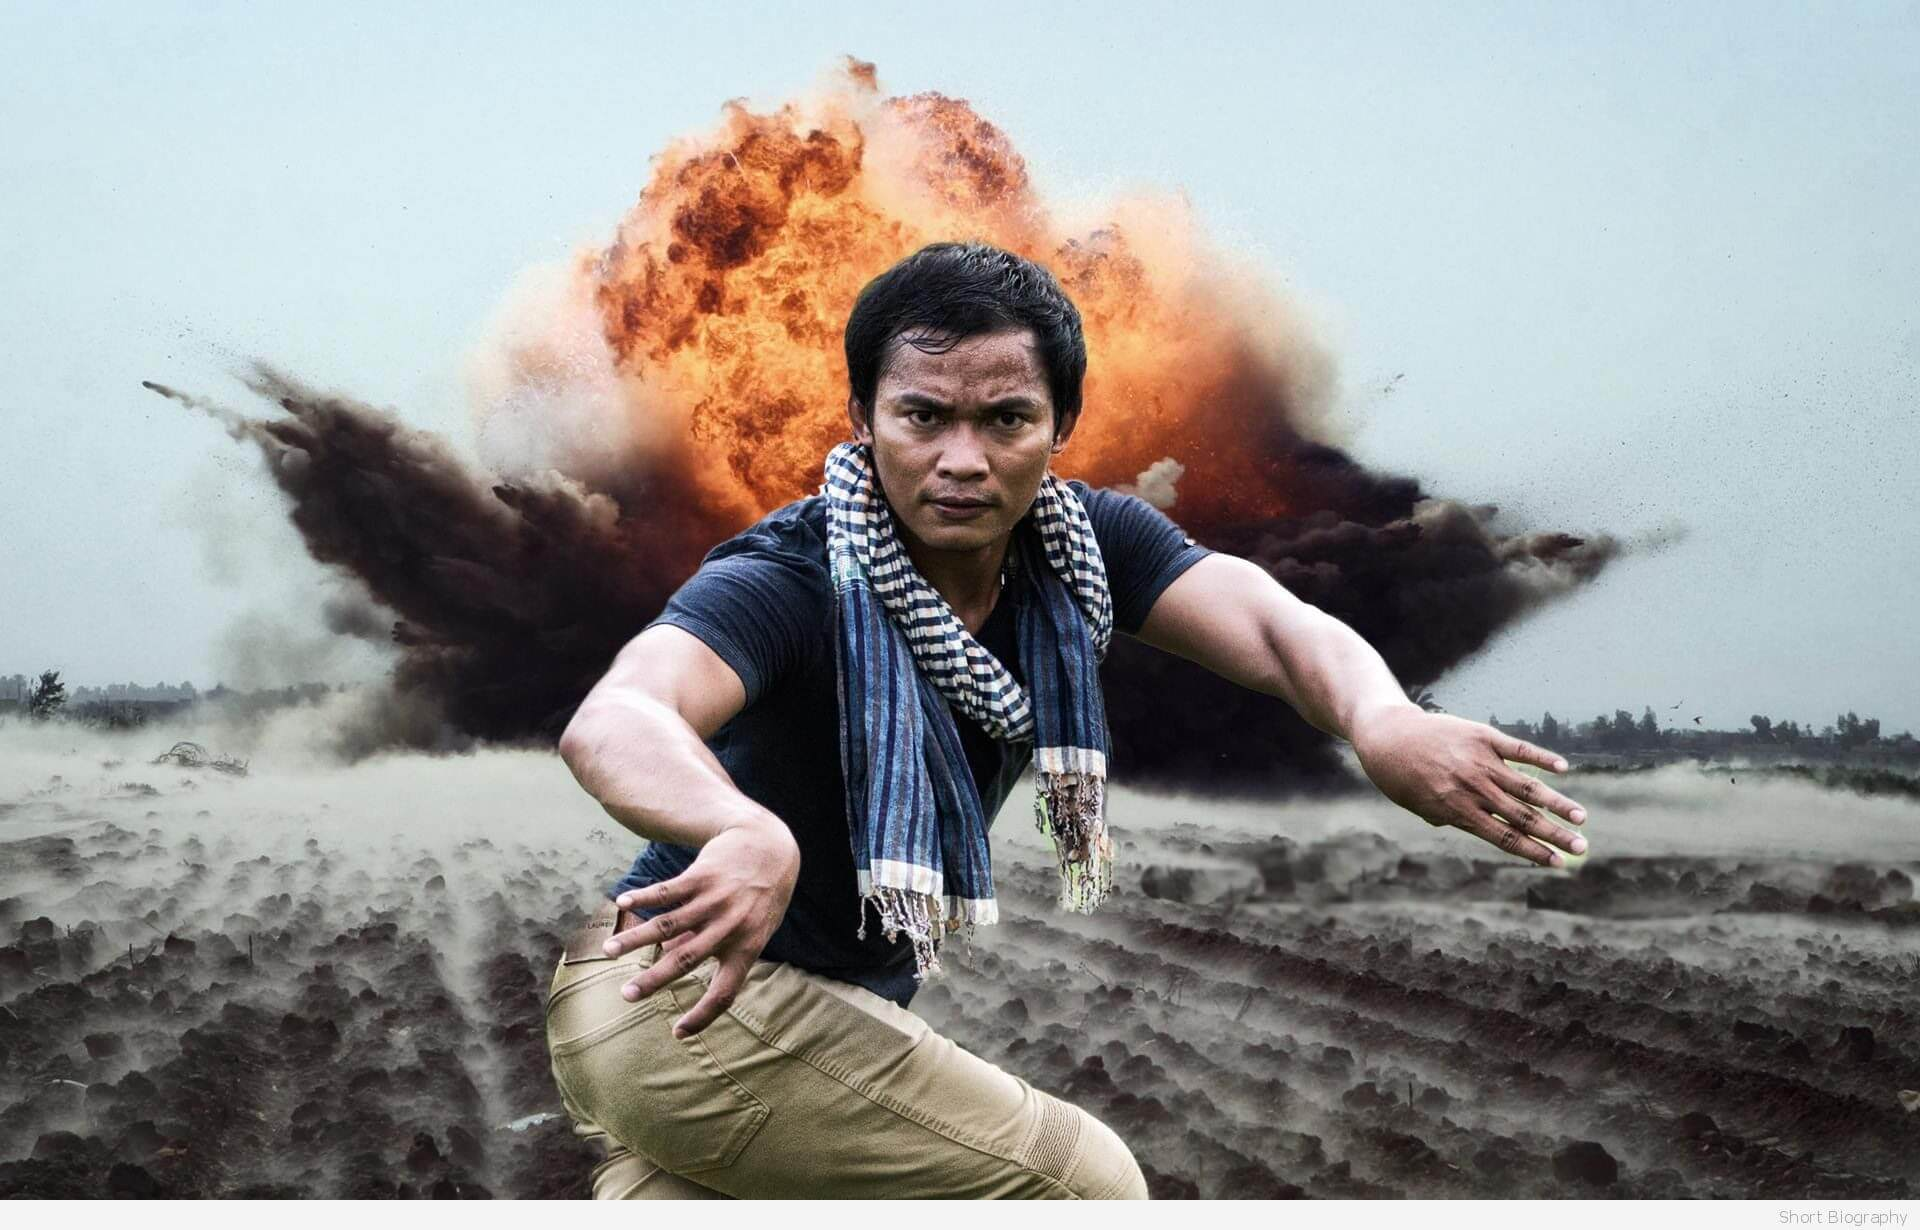 Jaa Ideal tony jaa biography | japanom - tatchakorn - panom yeerum